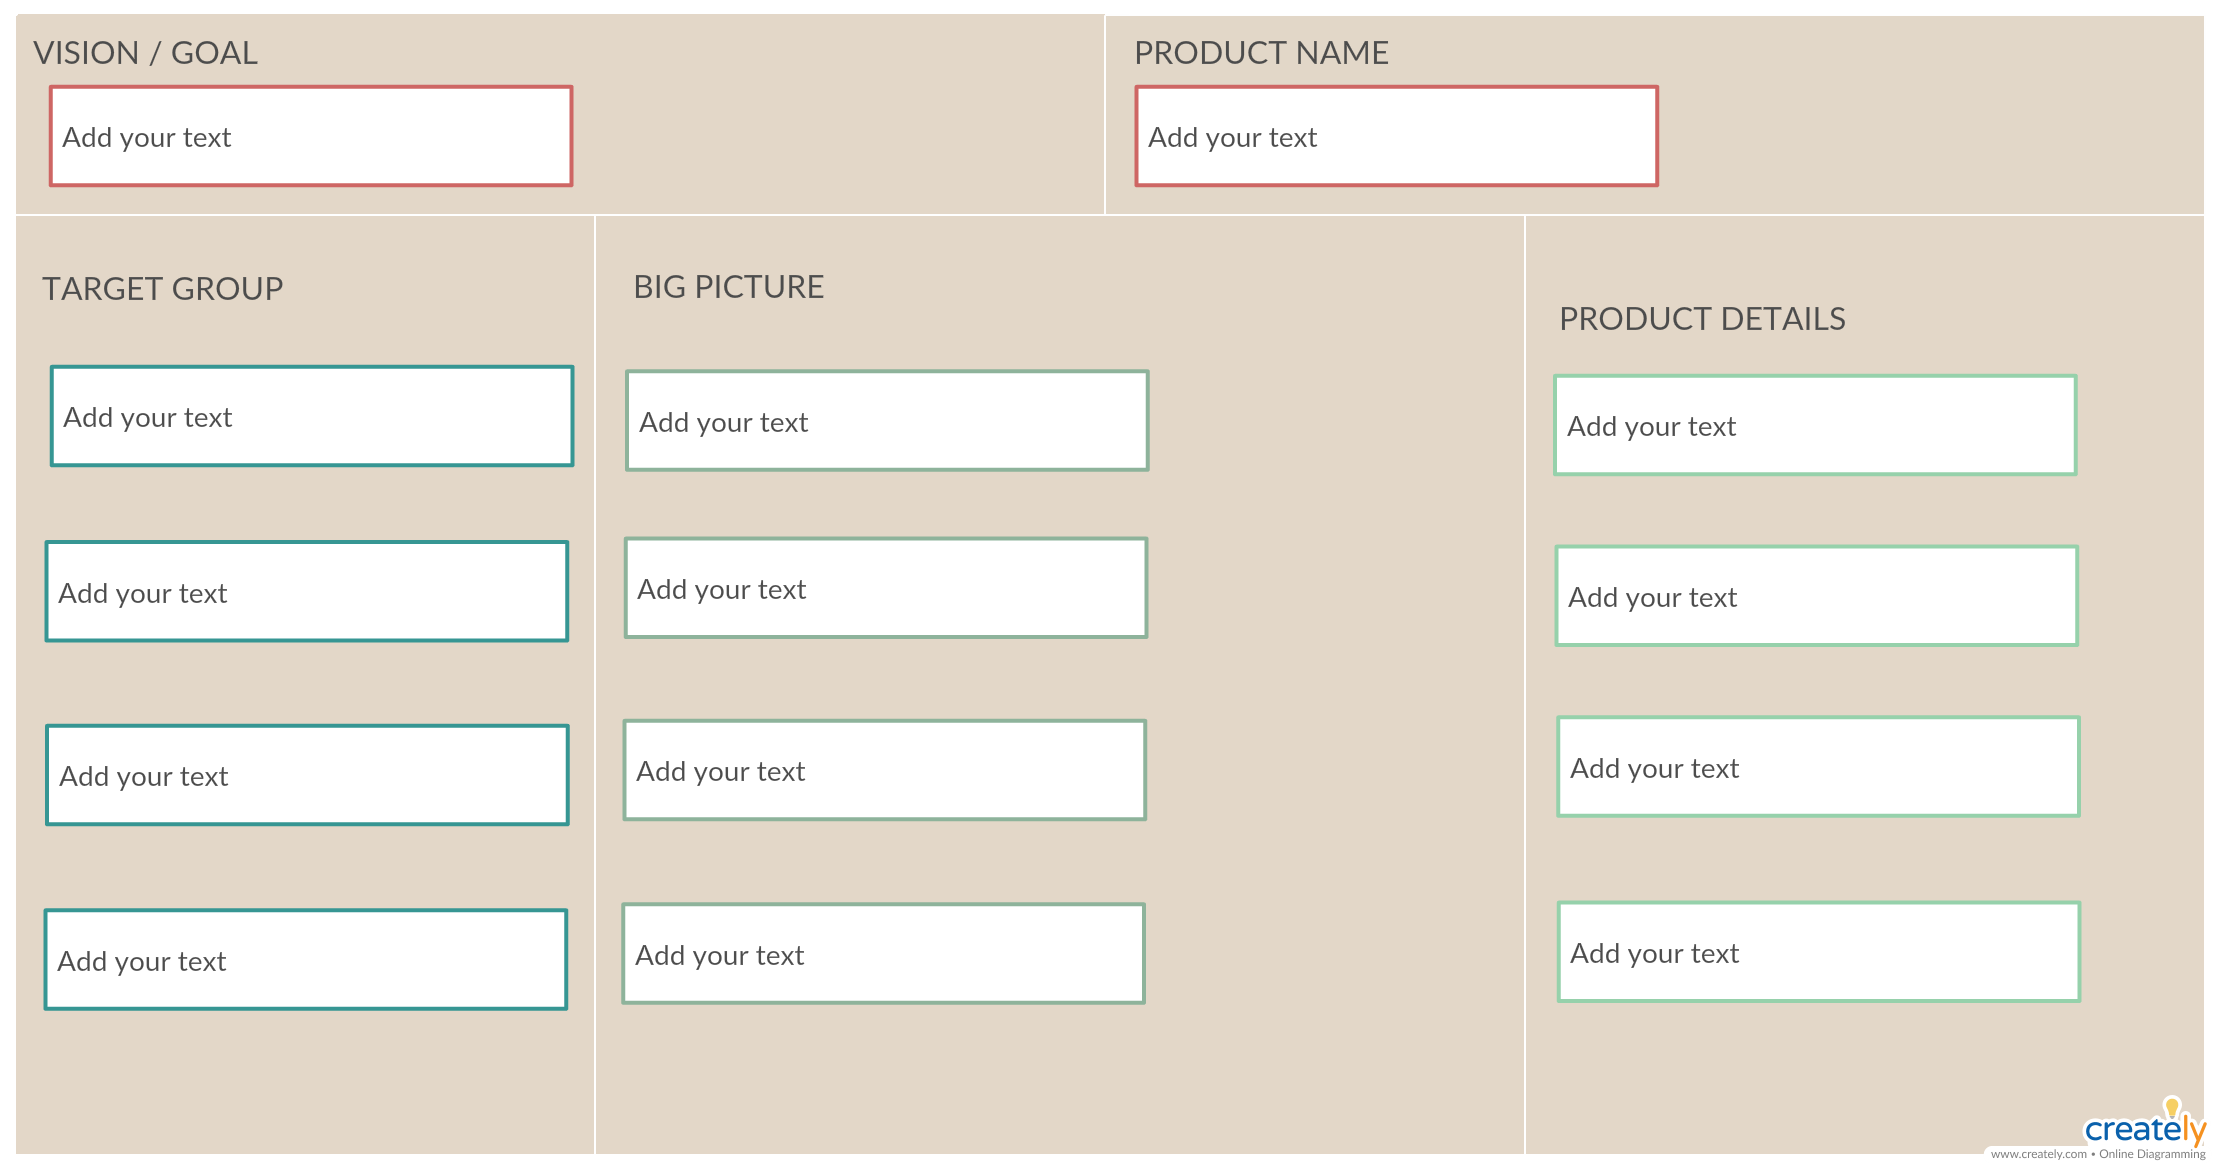 Product canvas to map, design, and describe your product